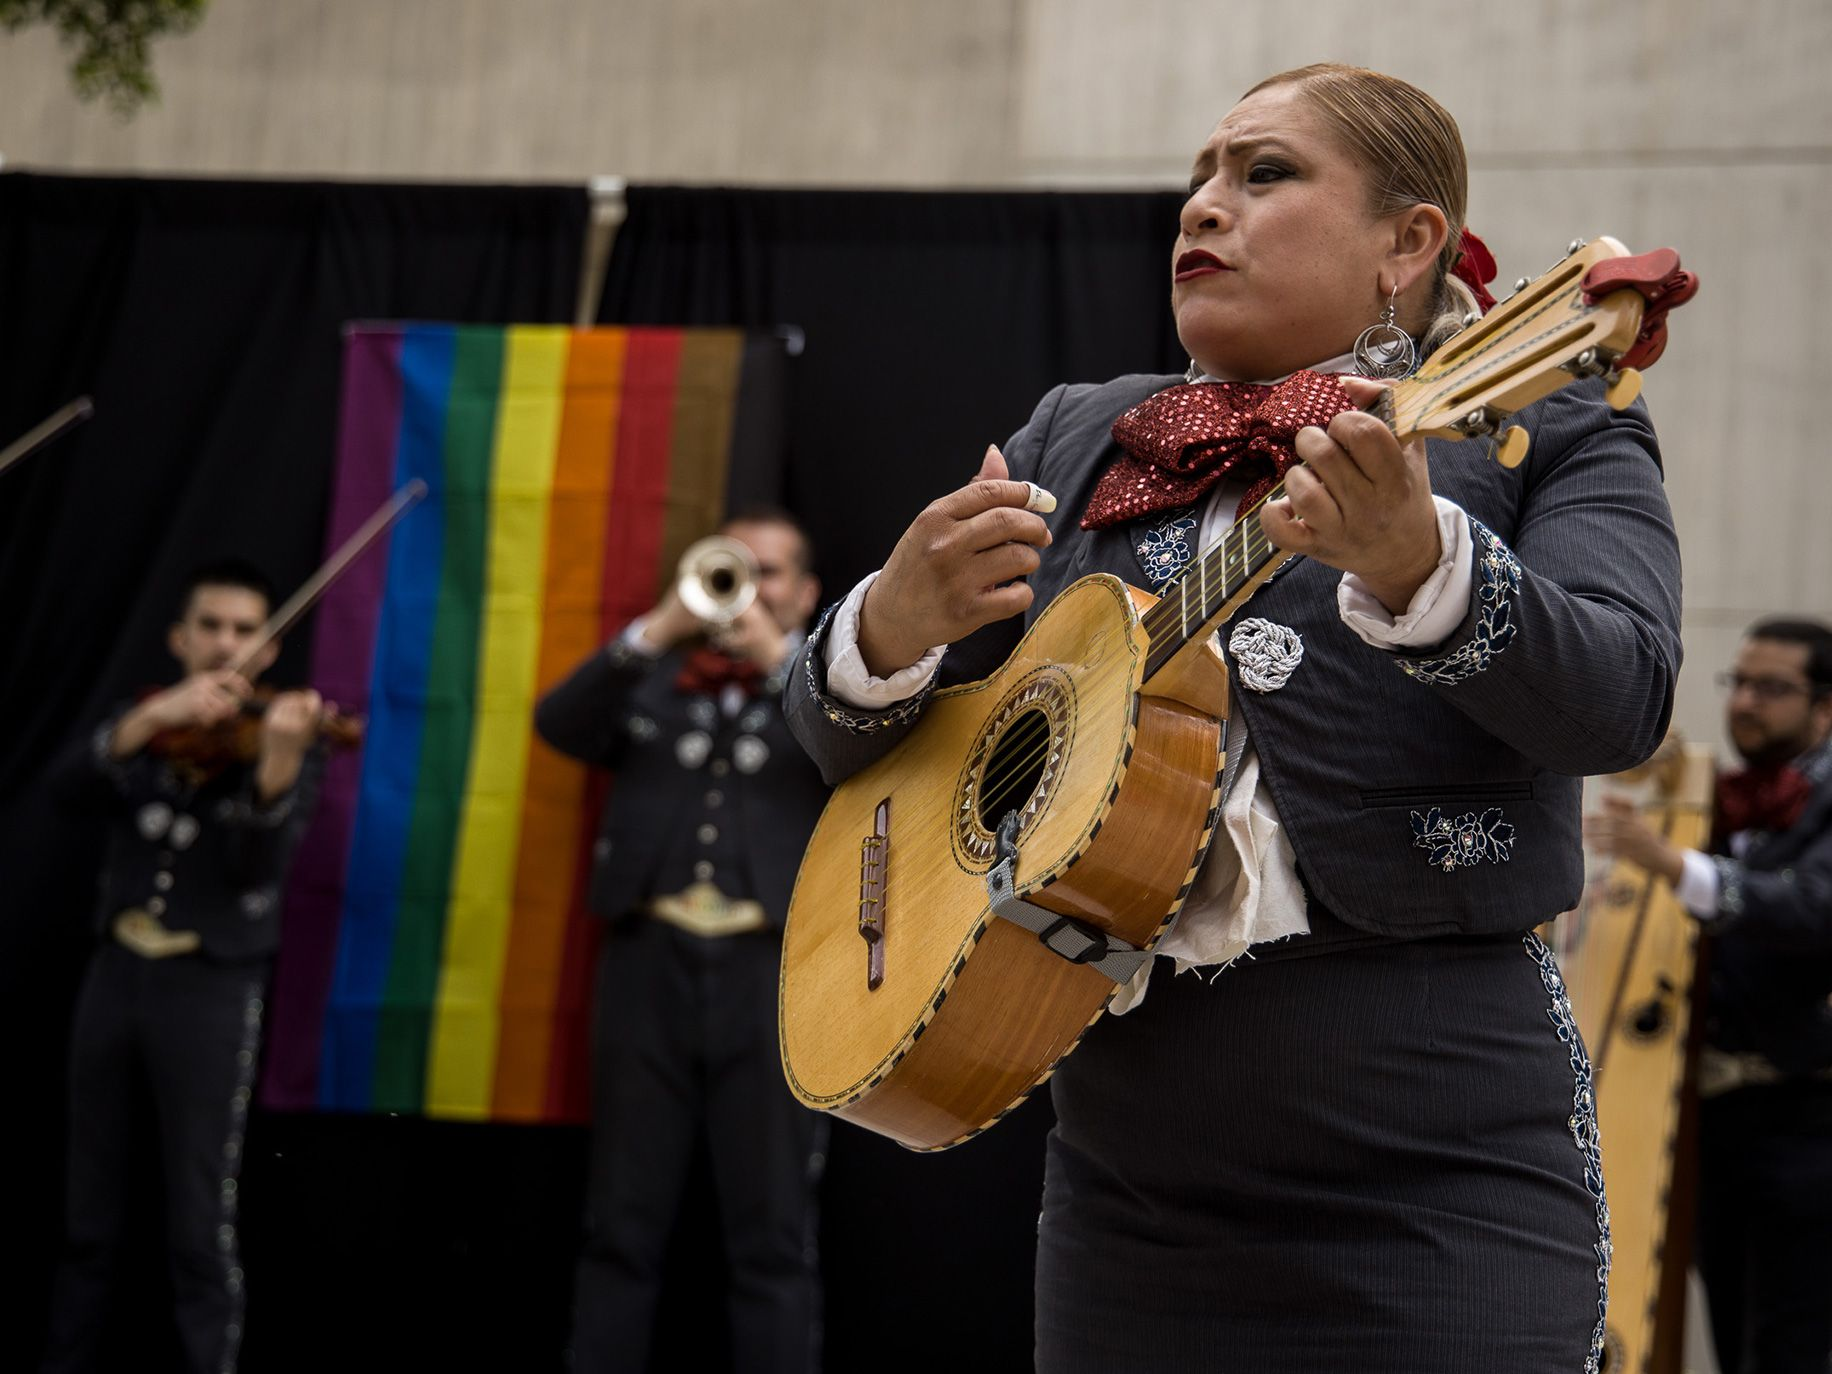 Maura Martinez performs with Mariachi Arcoiris, the first LGBTQ+ mariachi band.